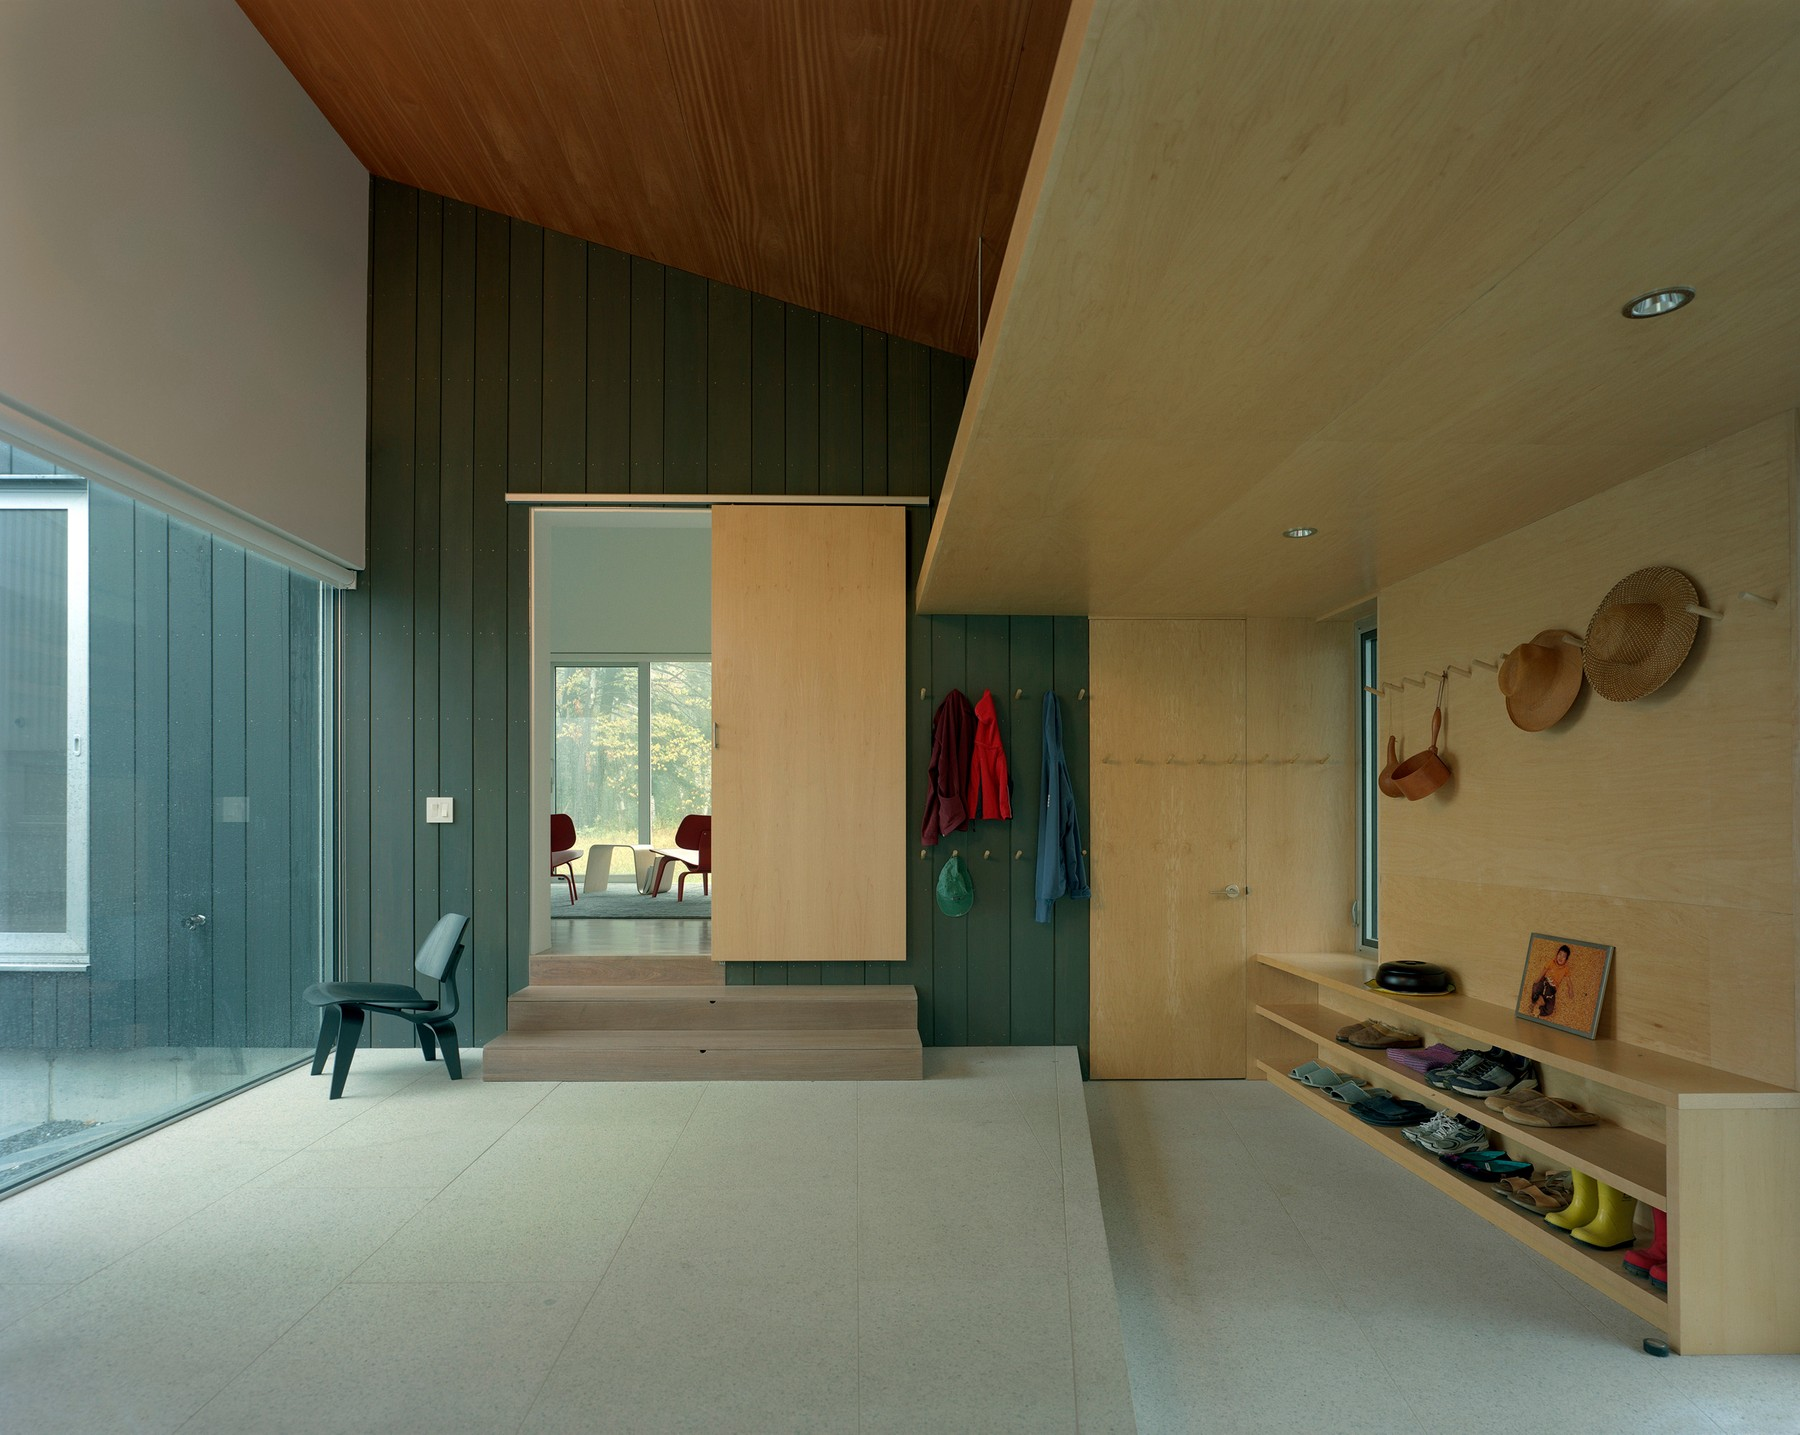 Putney Mountain House by Kyu Sung Woo Architects, Vermont, USA